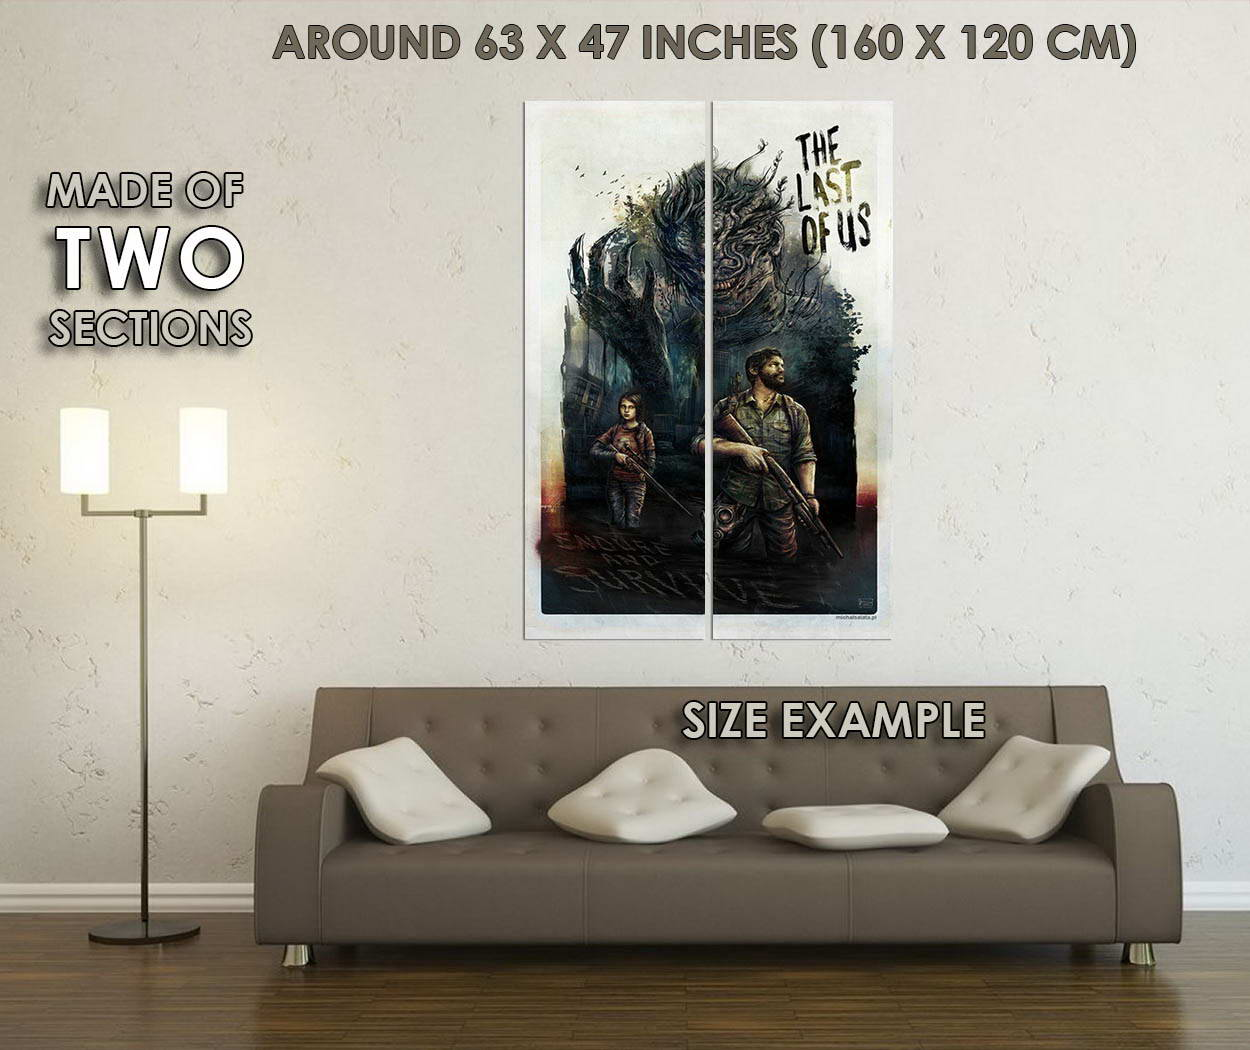 10048-The-Last-Of-Us-Hot-Game-Art-Ellie-Joel-LAMINATED-POSTER-CA thumbnail 6